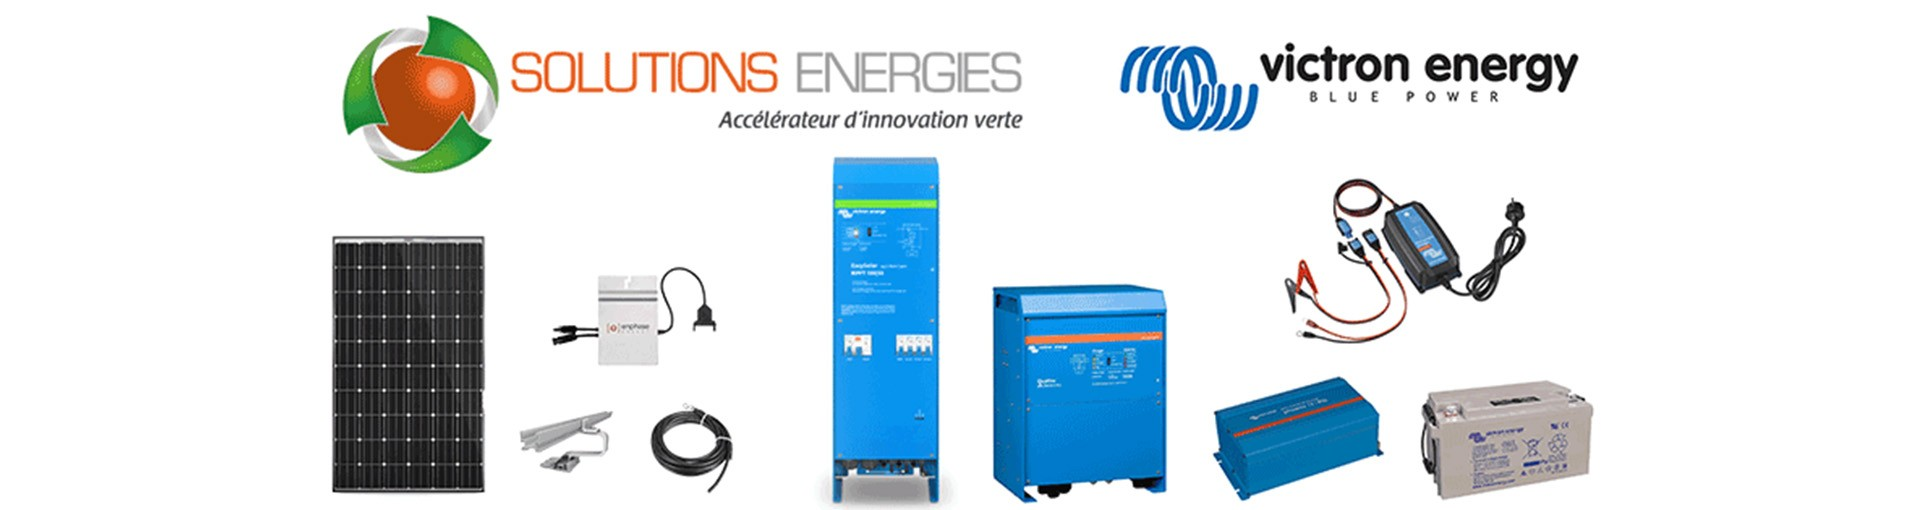 Revendeur officiel Victron Energy